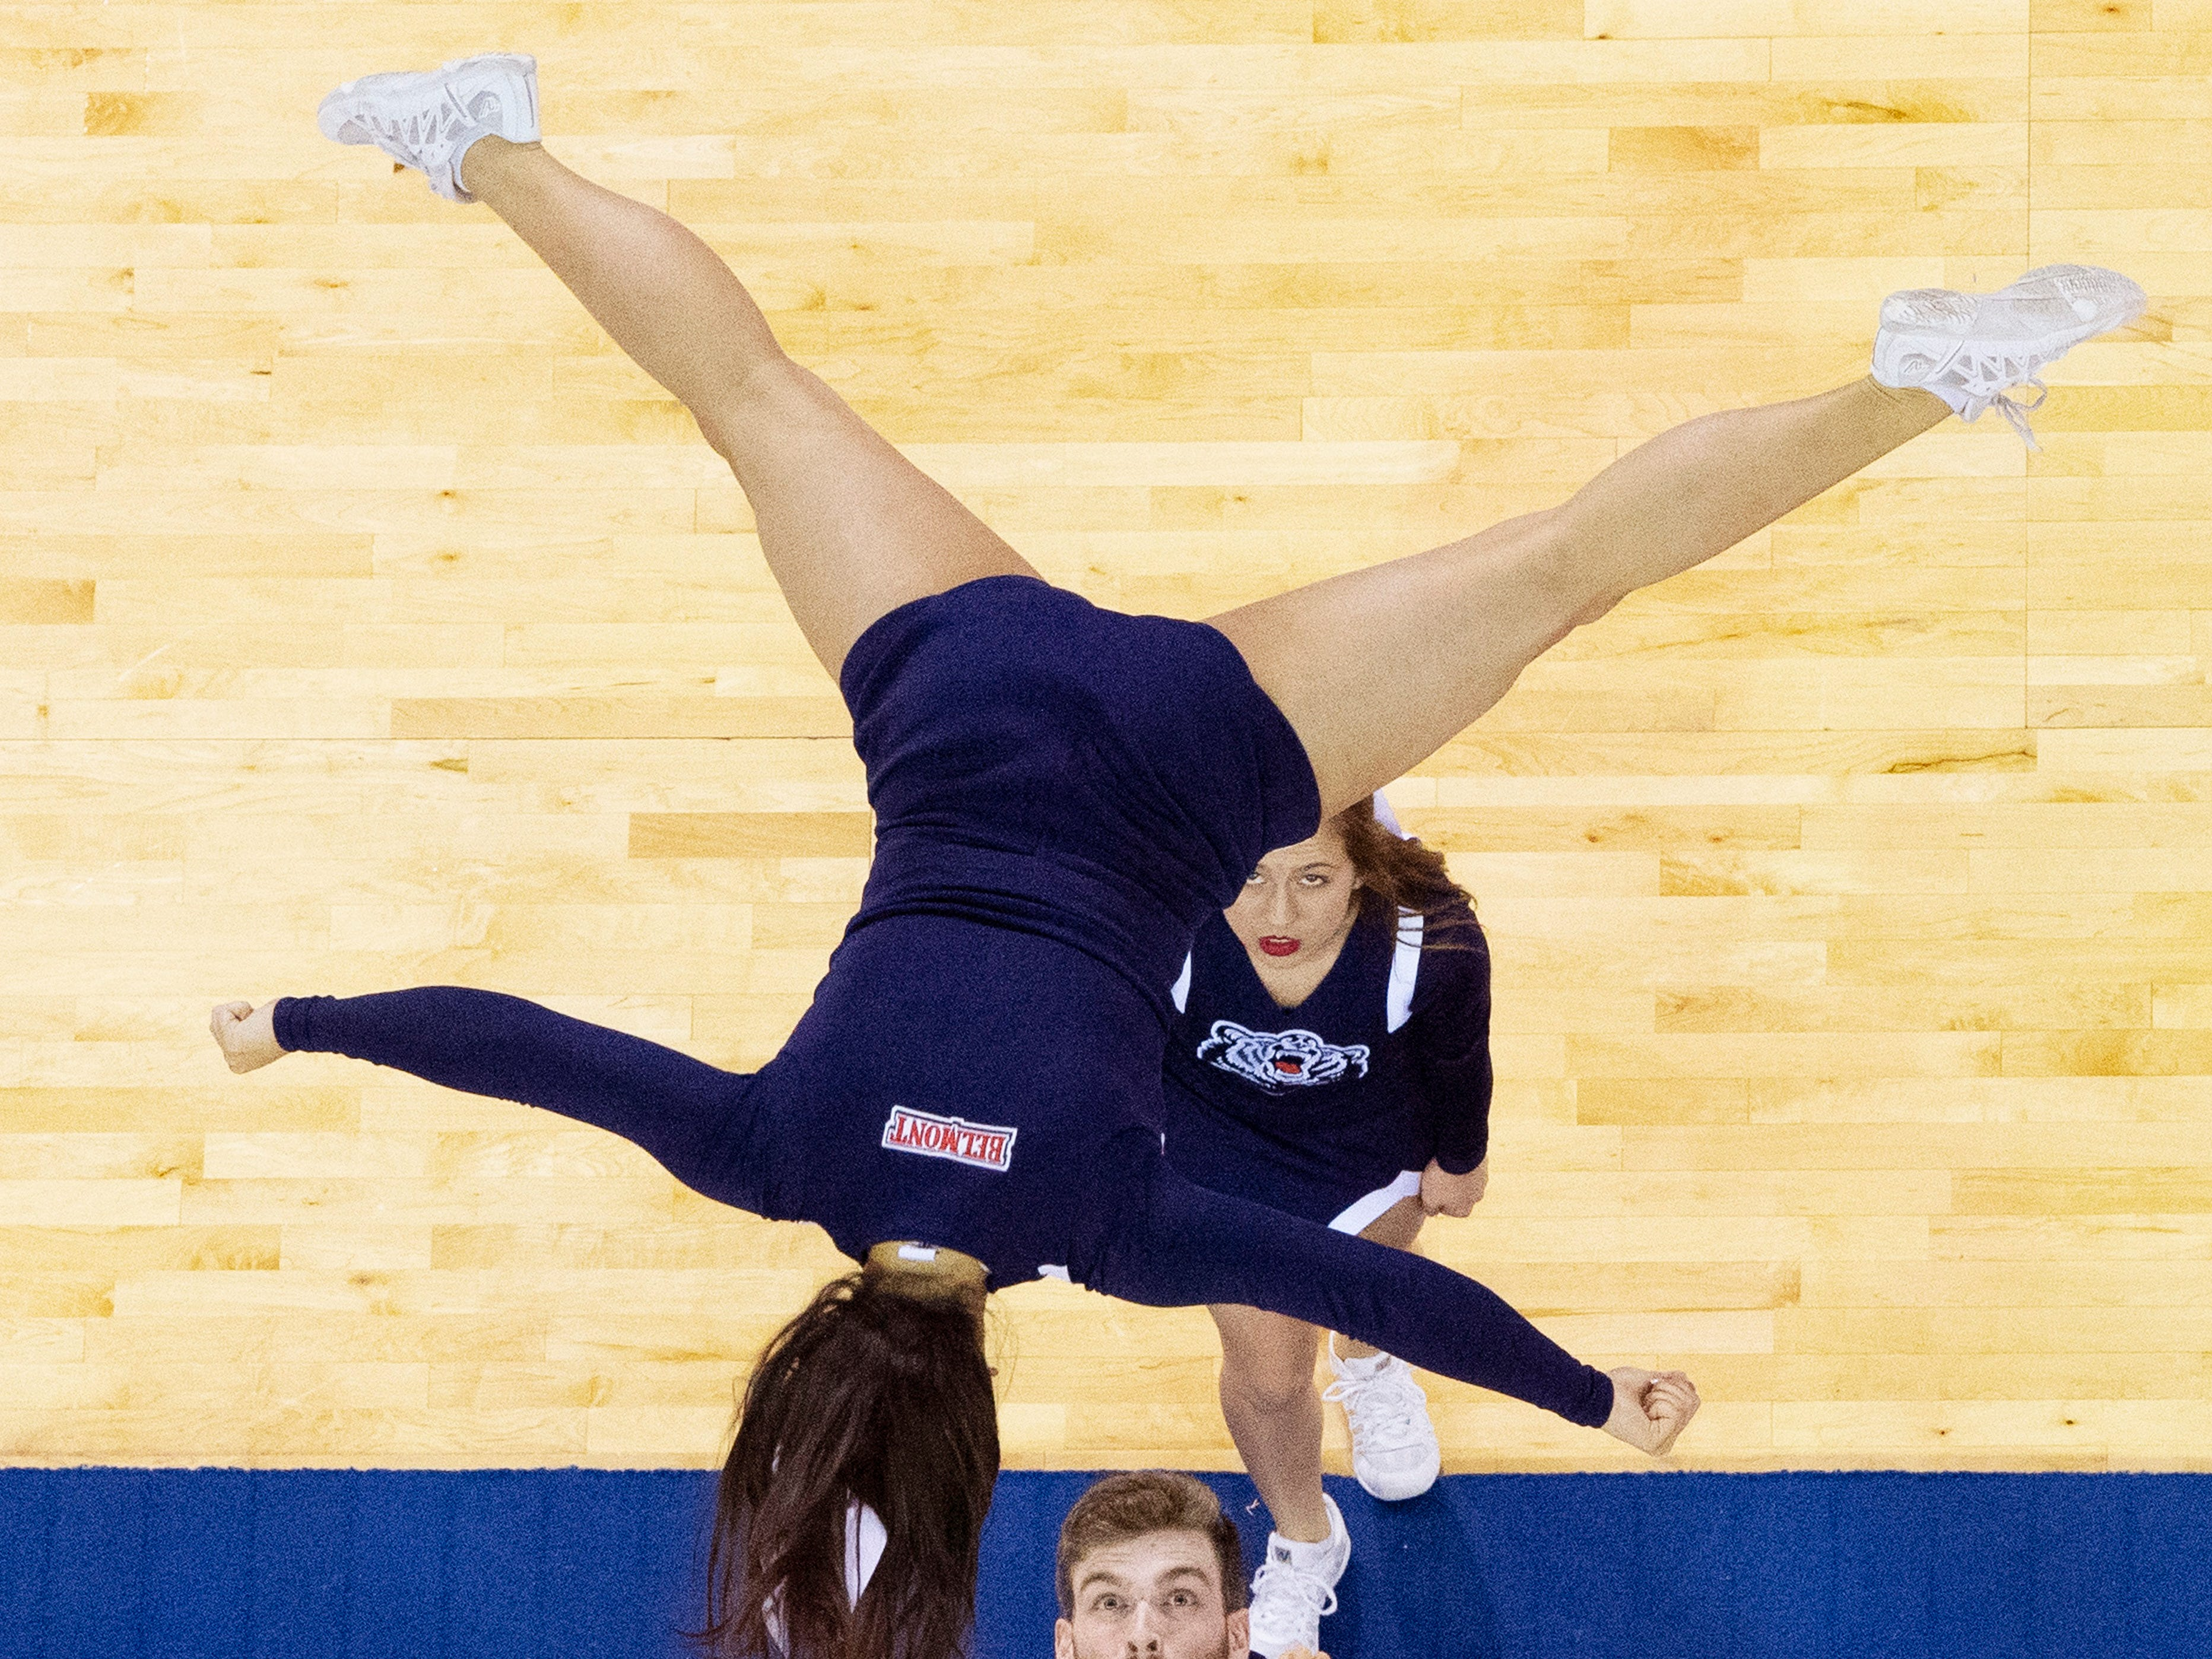 The Belmont Cheerleaders look to catch their flyer during a halftime performance at the Ford Center in Evansville Friday afternoon. The Belmont Bruins women's basketball team beat the Tennessee Tech Golden Eagles in the semifinal game of the Ohio Valley Conference Basketball Championships.